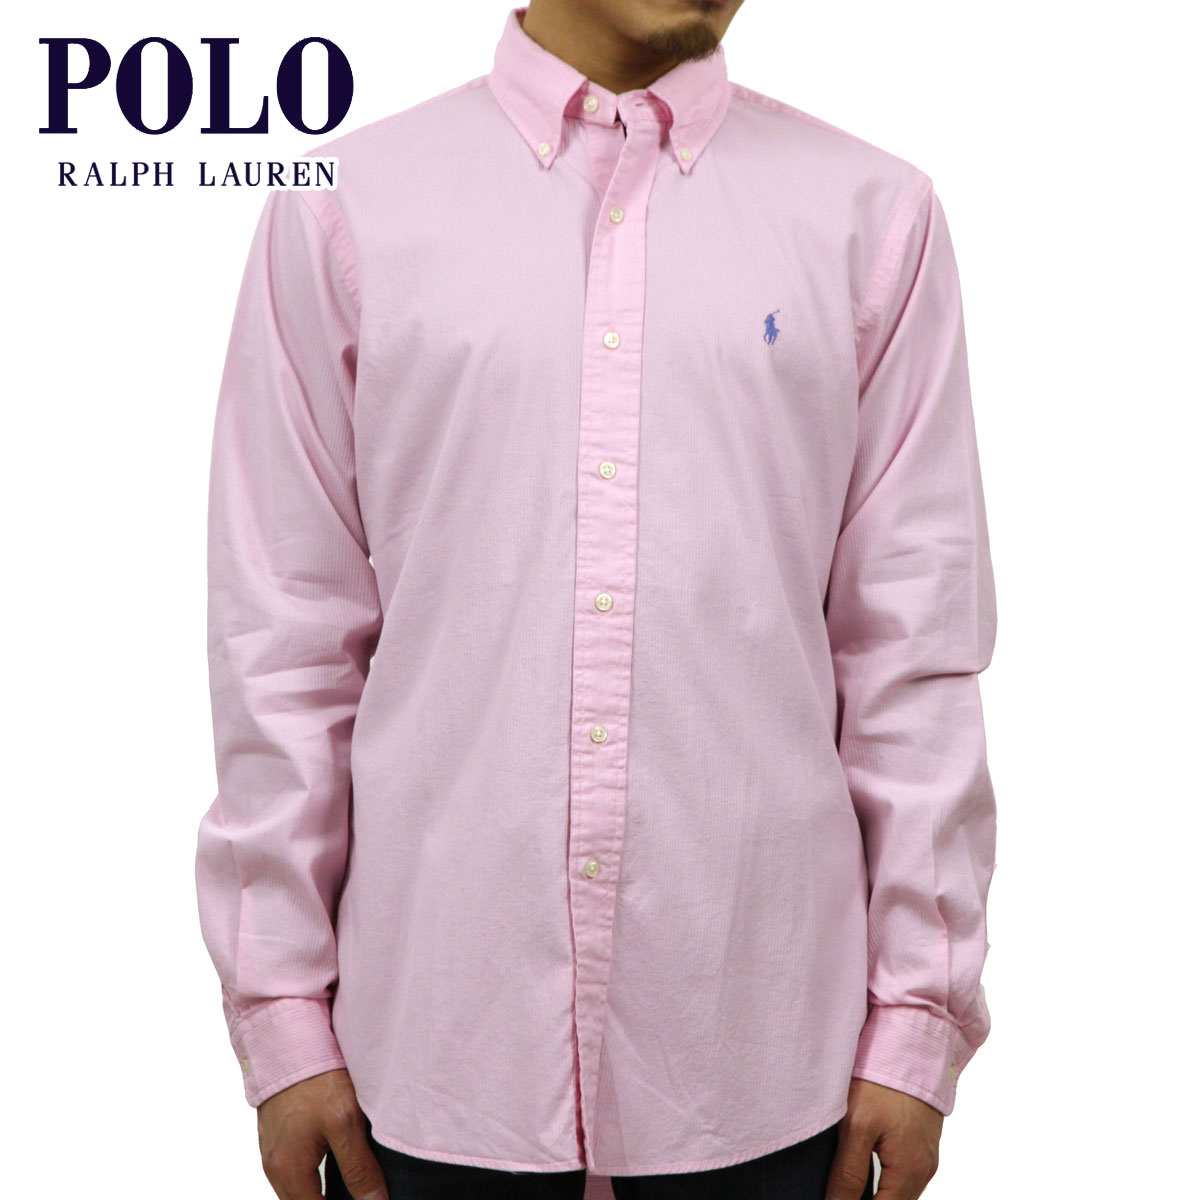 145170b584155 Rakuten Ichiba shop MIXON  Polo Ralph Lauren POLO RALPH LAUREN regular  article men long sleeves button-down shirt SEERSUCKER L S SHIRT PINK  10P21Aug14 ...